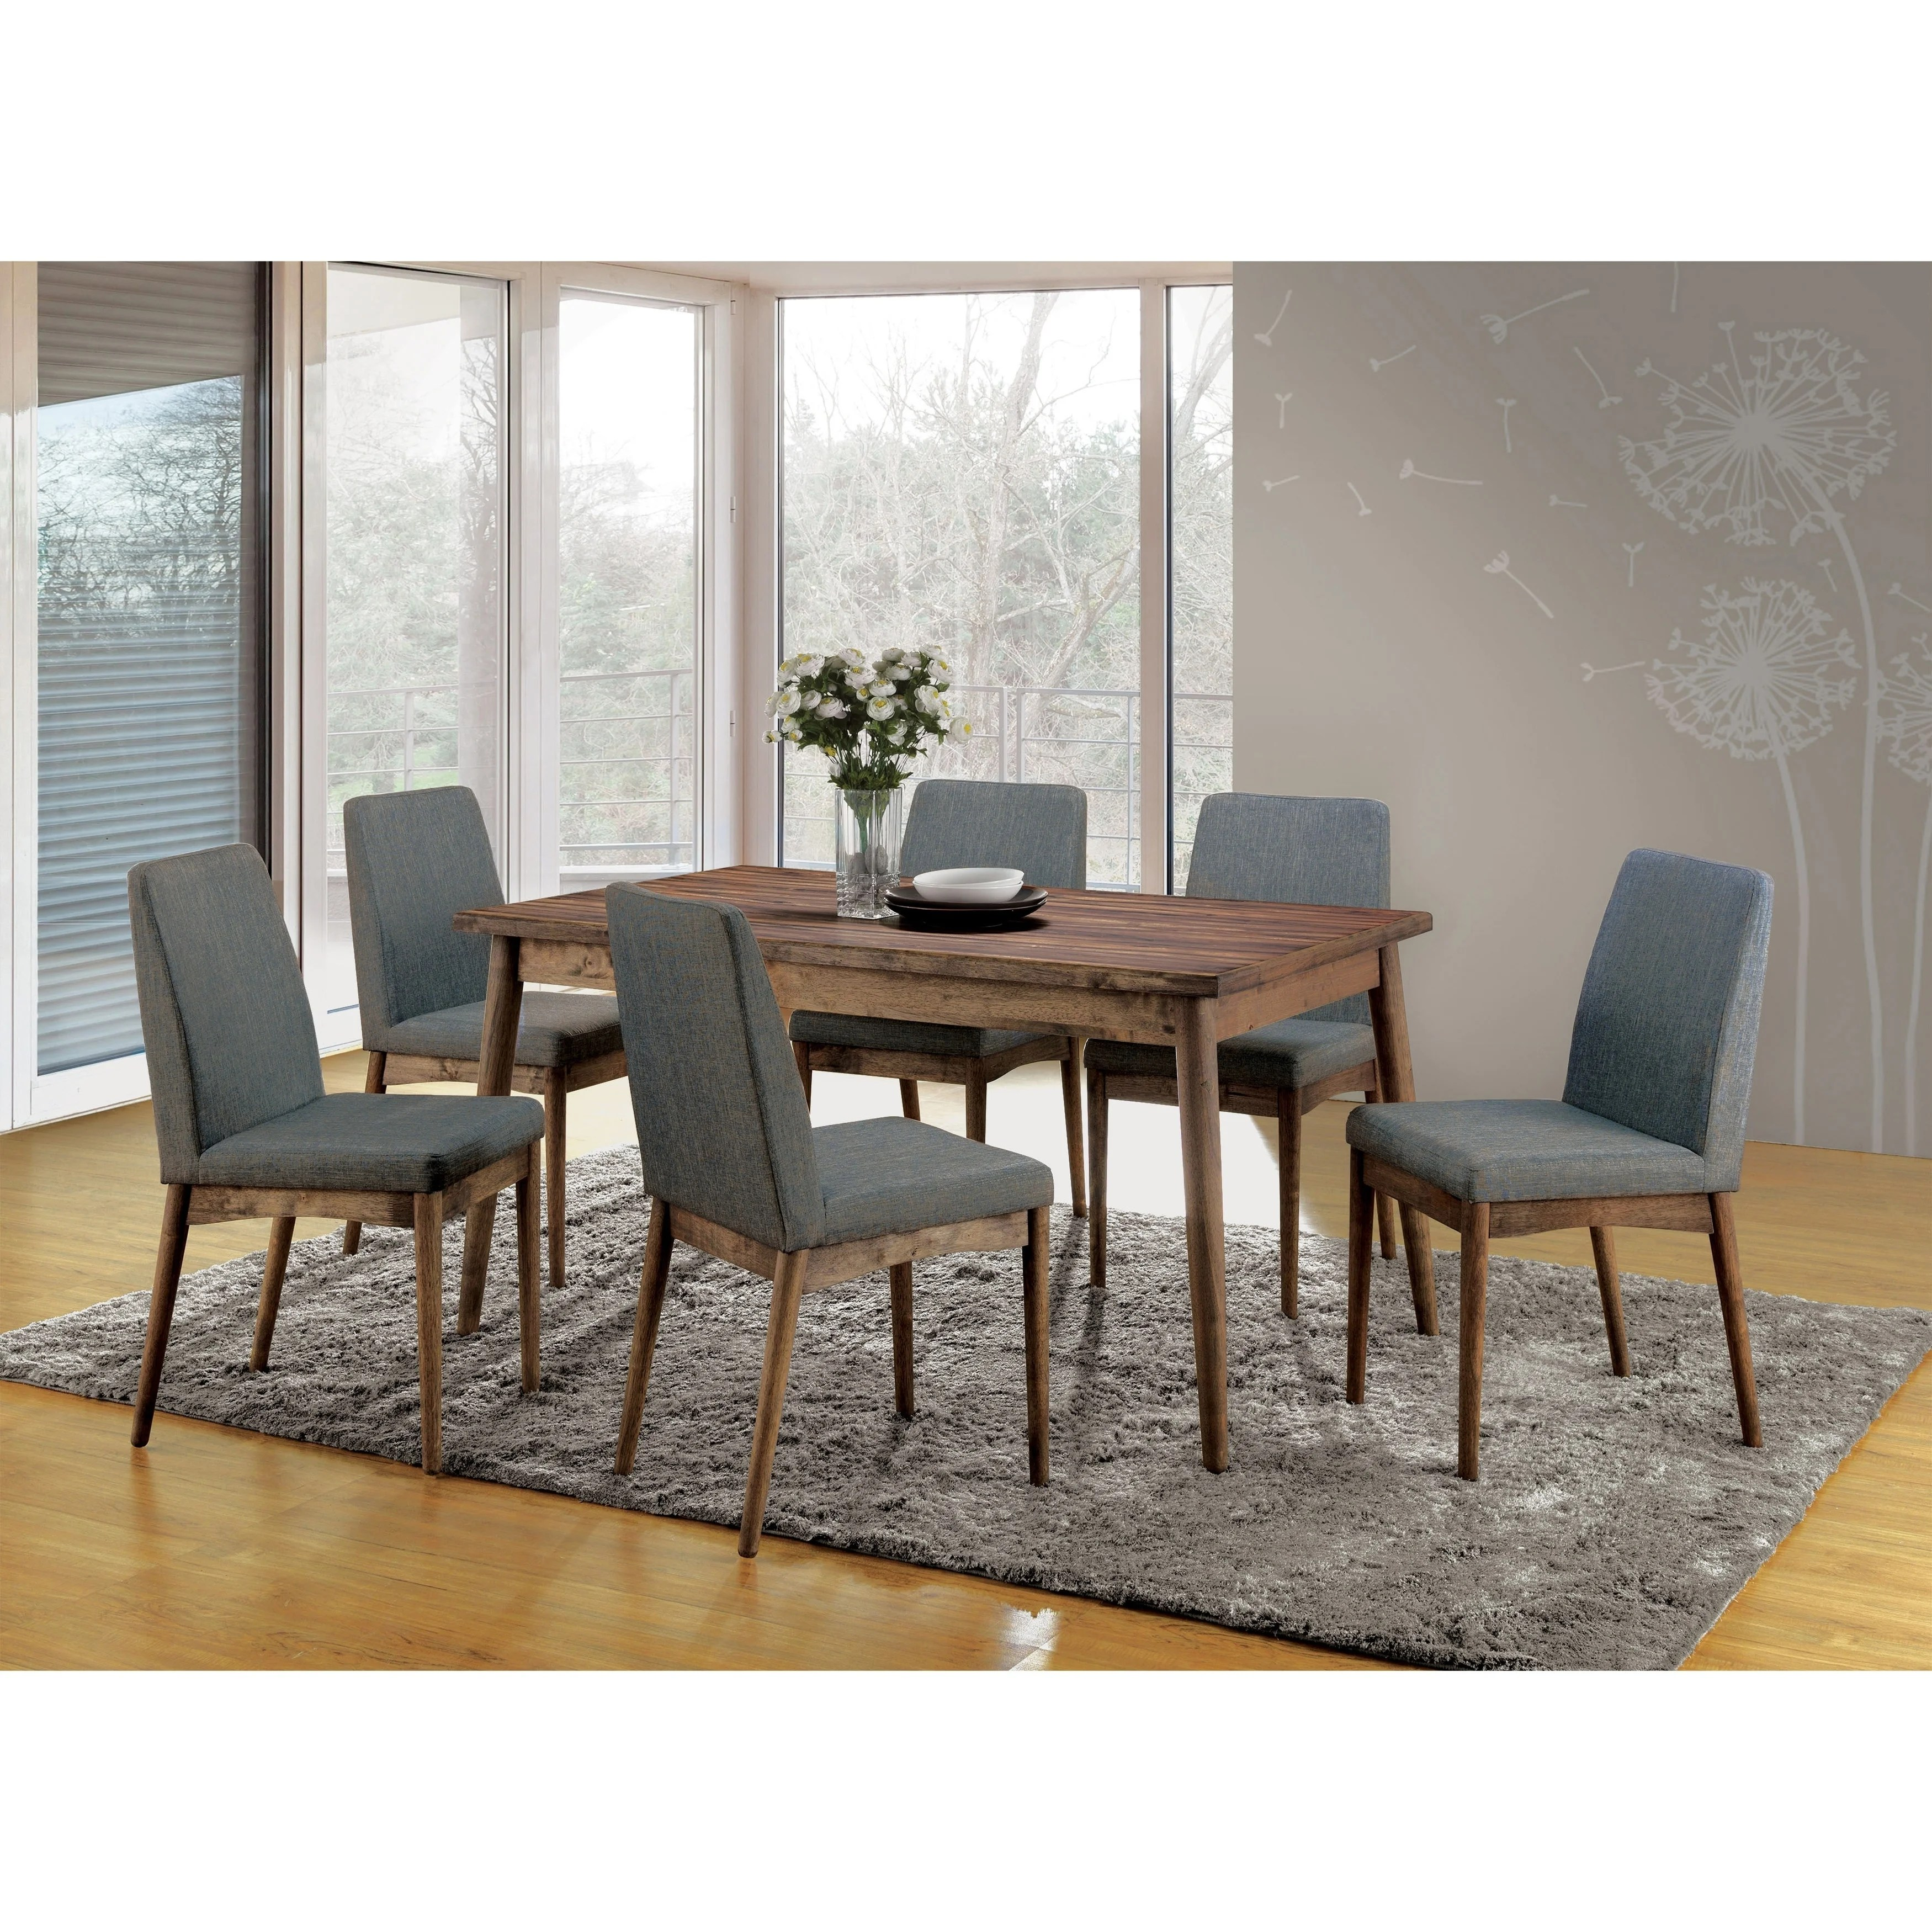 Modern Table And Chairs Reynorth Mid Century Modern Natural Tone 7 Piece Dining Set By Foa